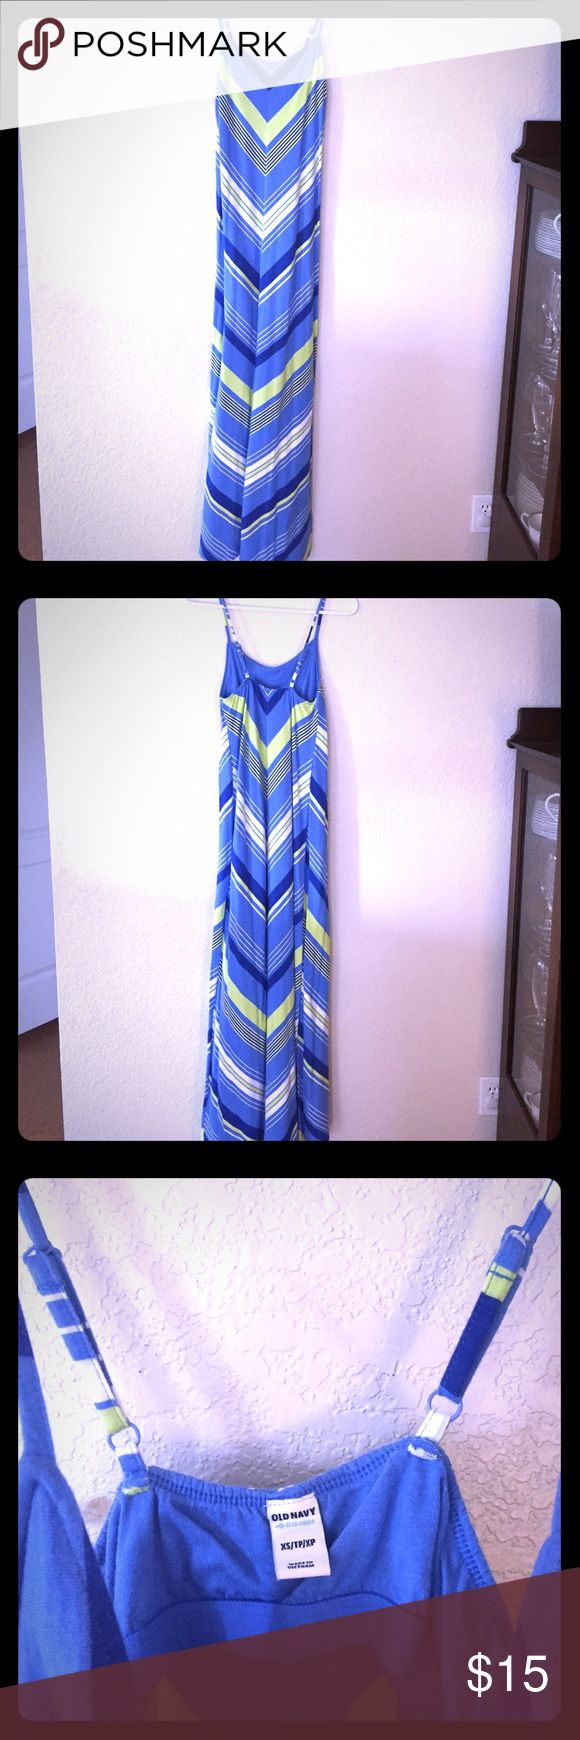 Women's old navy Cotten maxi sundress Old navy maxi sundress 100% Cotten with bra area lining; adjustable shoulder straps Old Navy Dresses Maxi